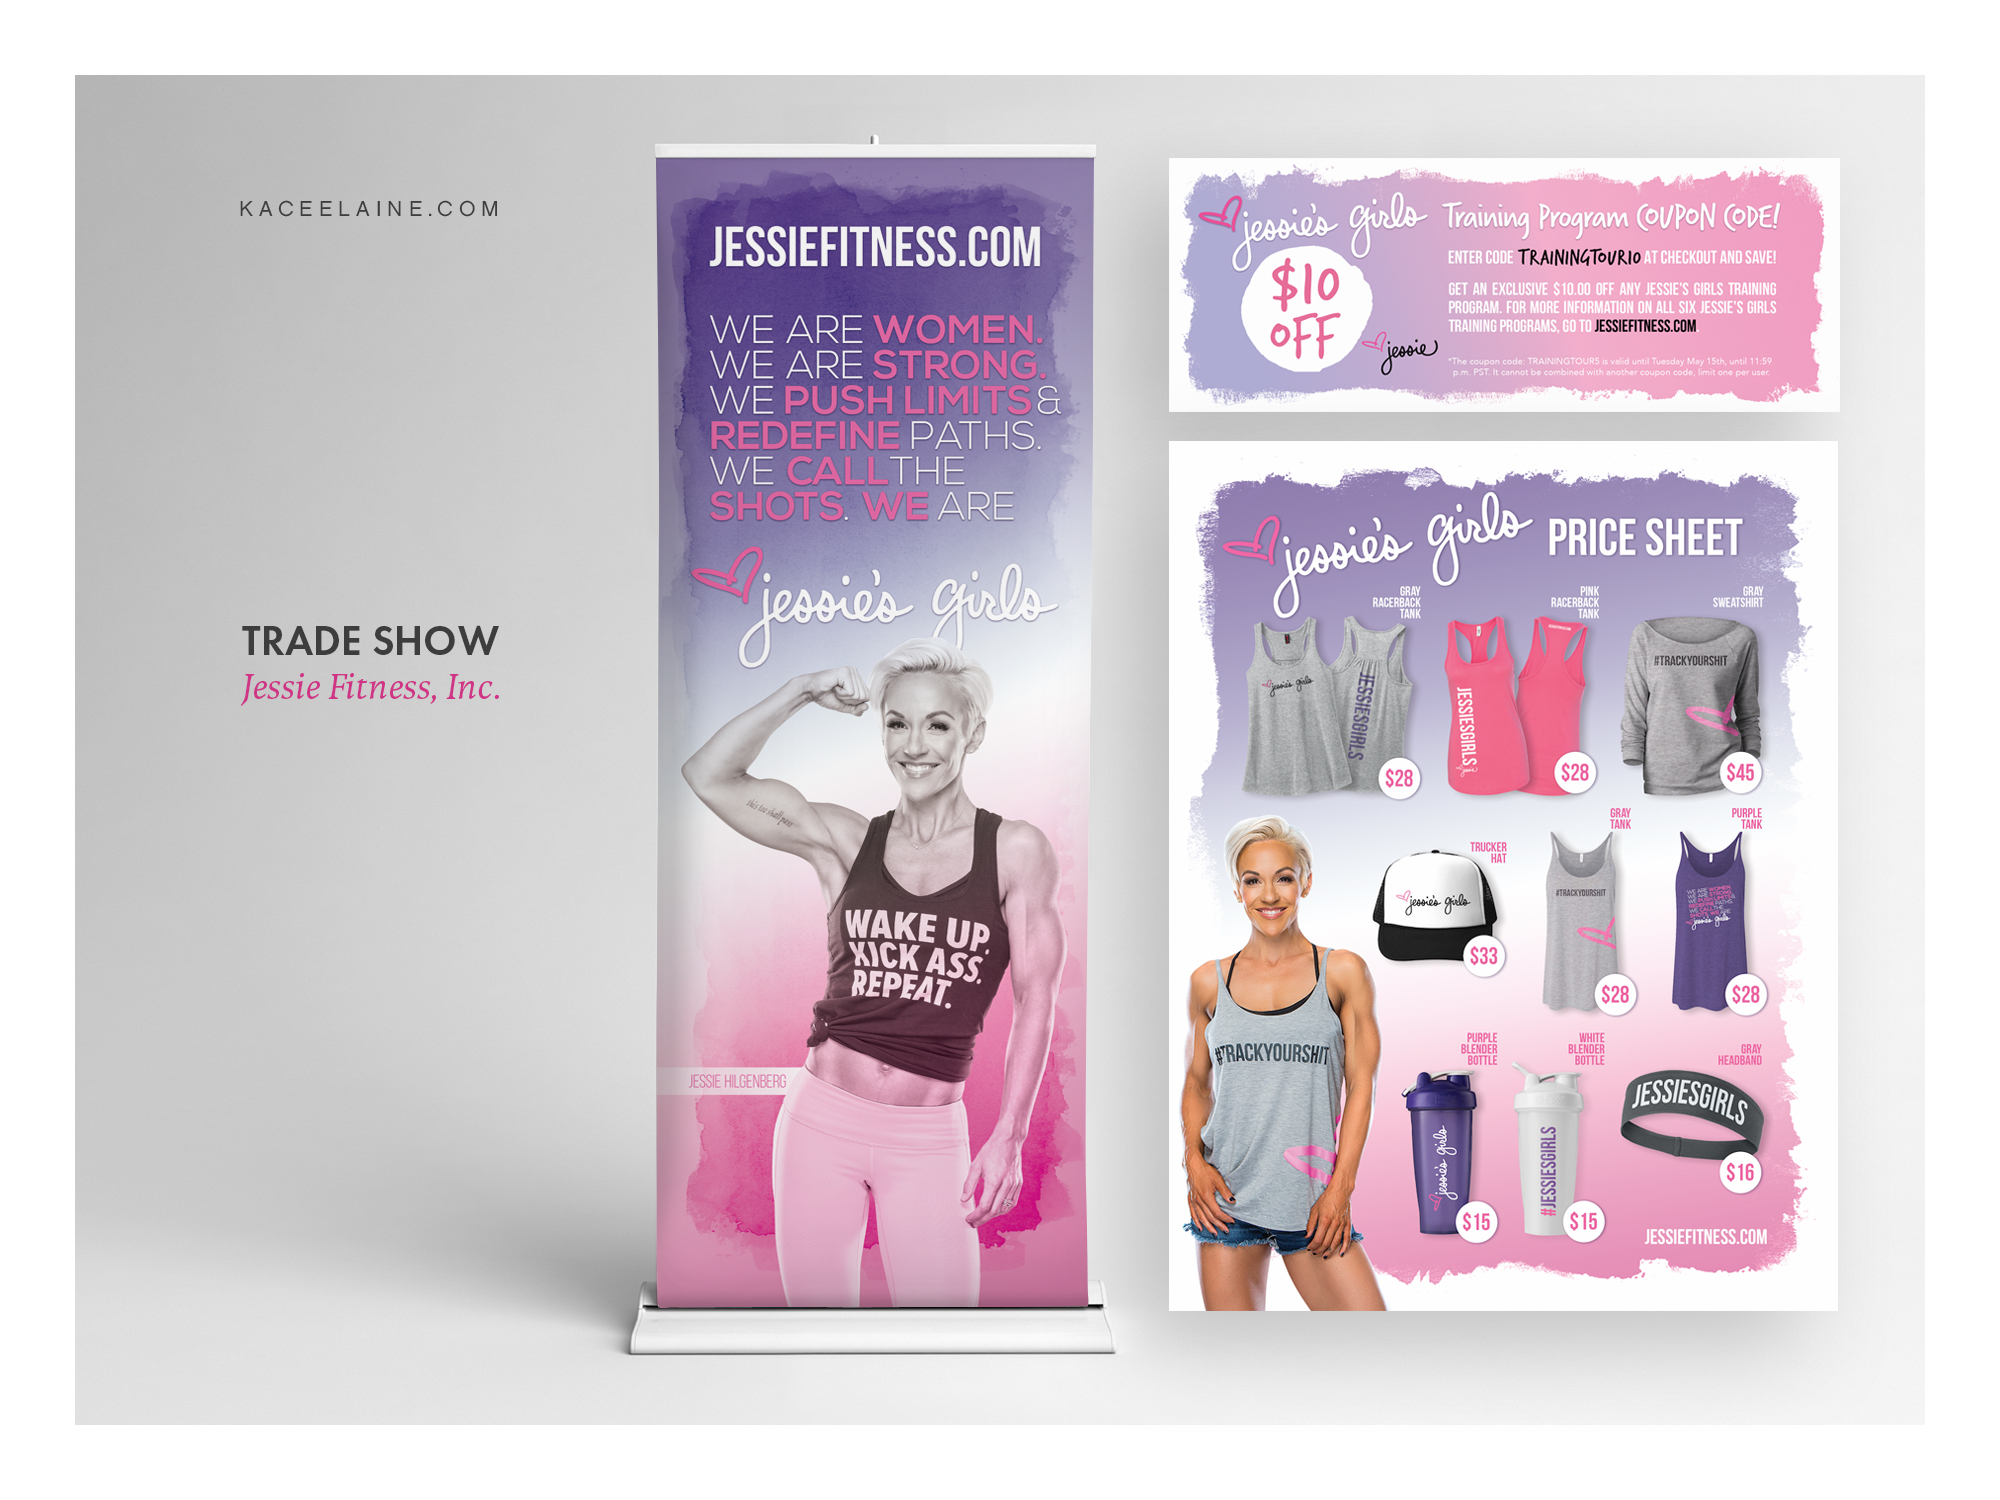 Trade Show Design for Jessie Fitness